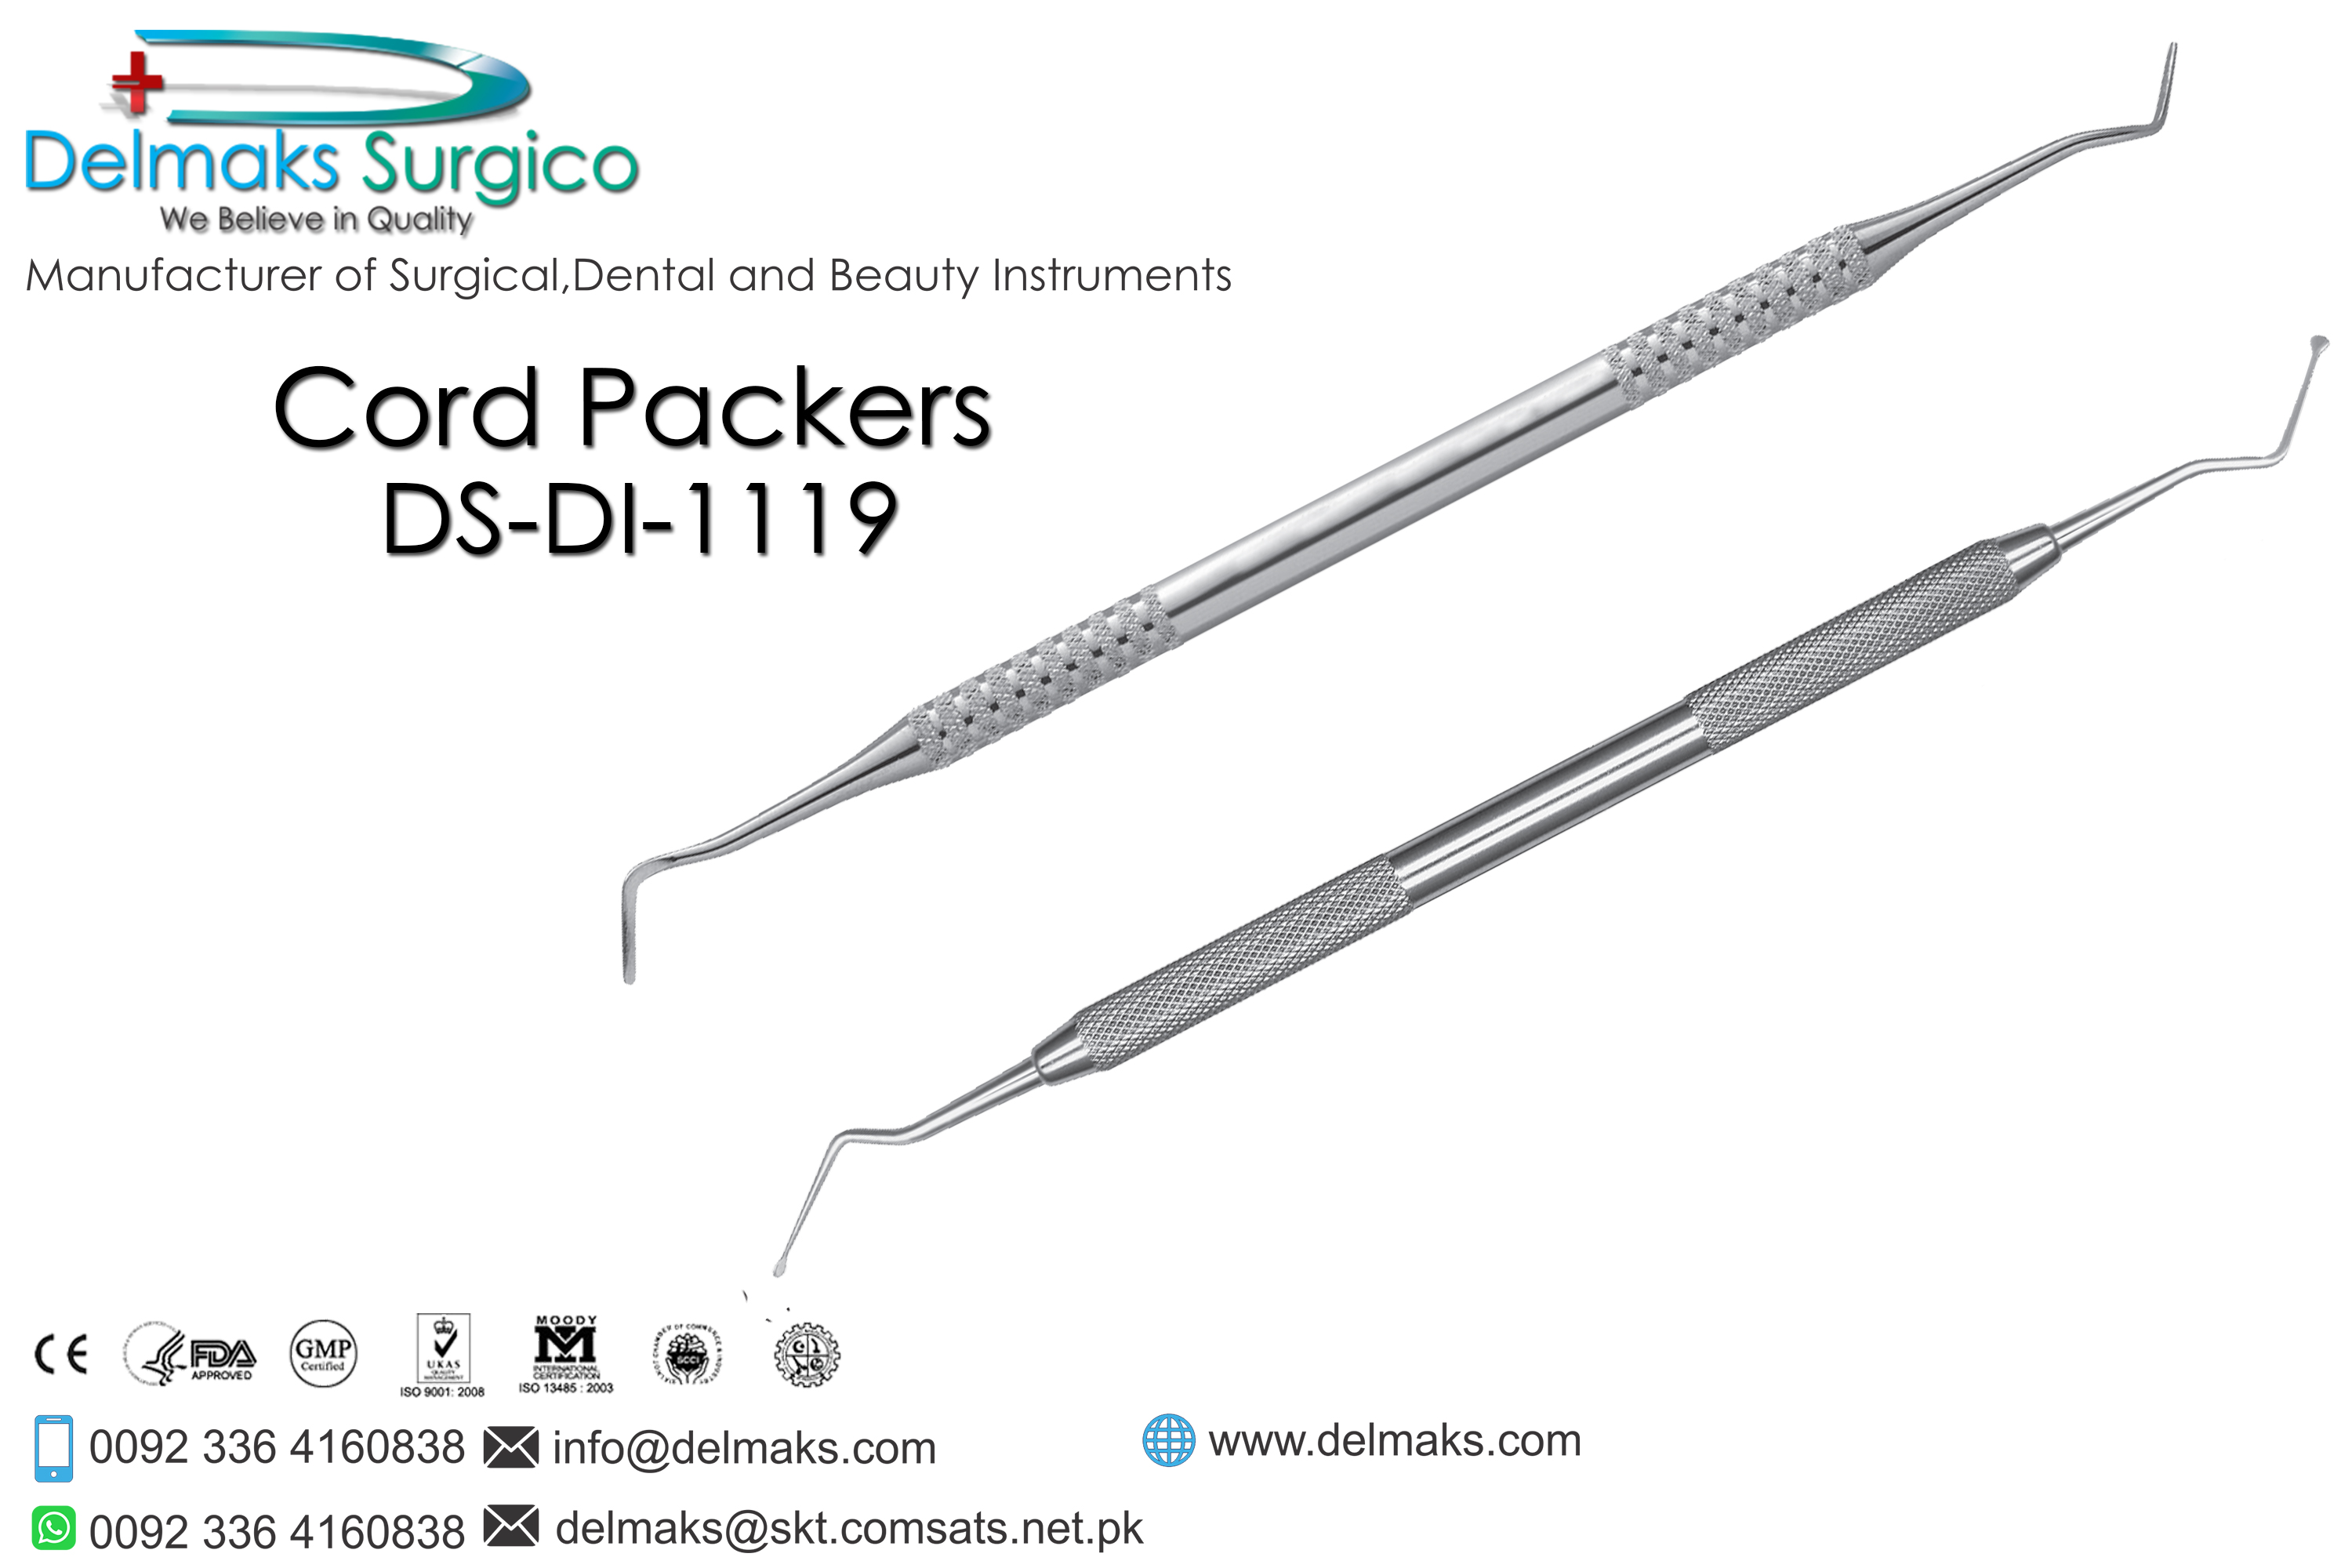 Cord Packers-Crown And Bridge(Fixed Prosthodontics) Instruments-Dental Instruments-Delmaks Surgico